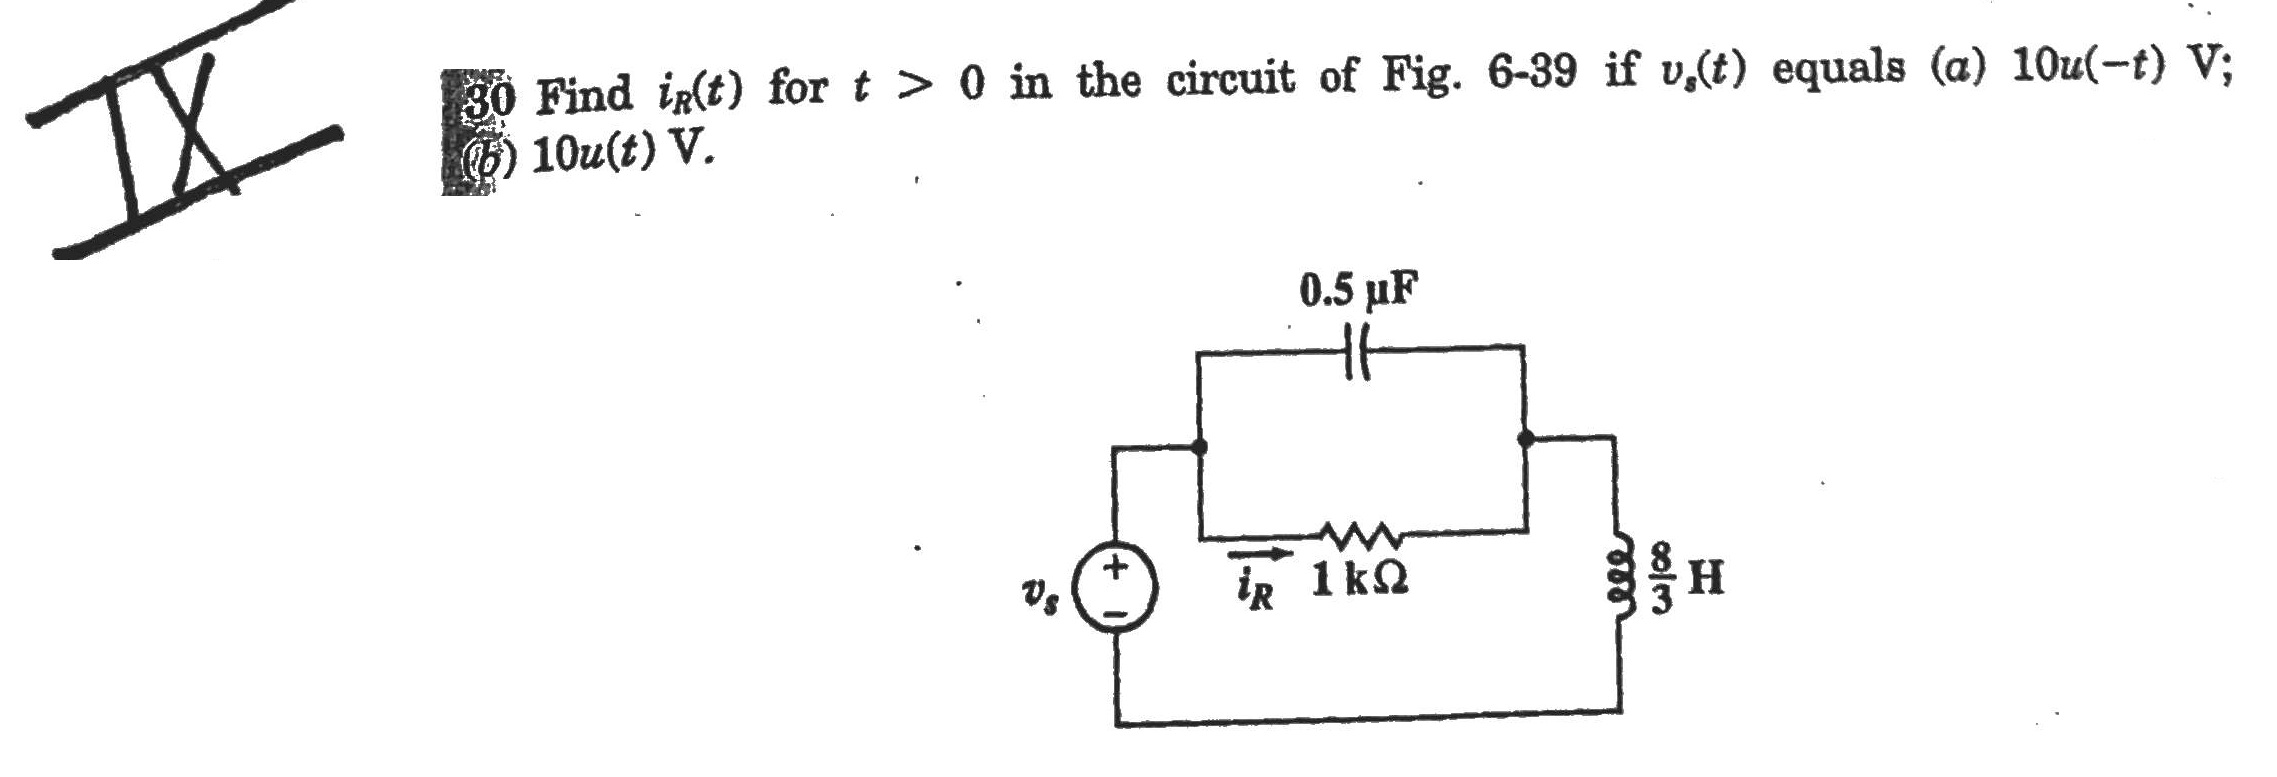 Find iR (t) for t > 0 in the circuit of Fig. 6-39